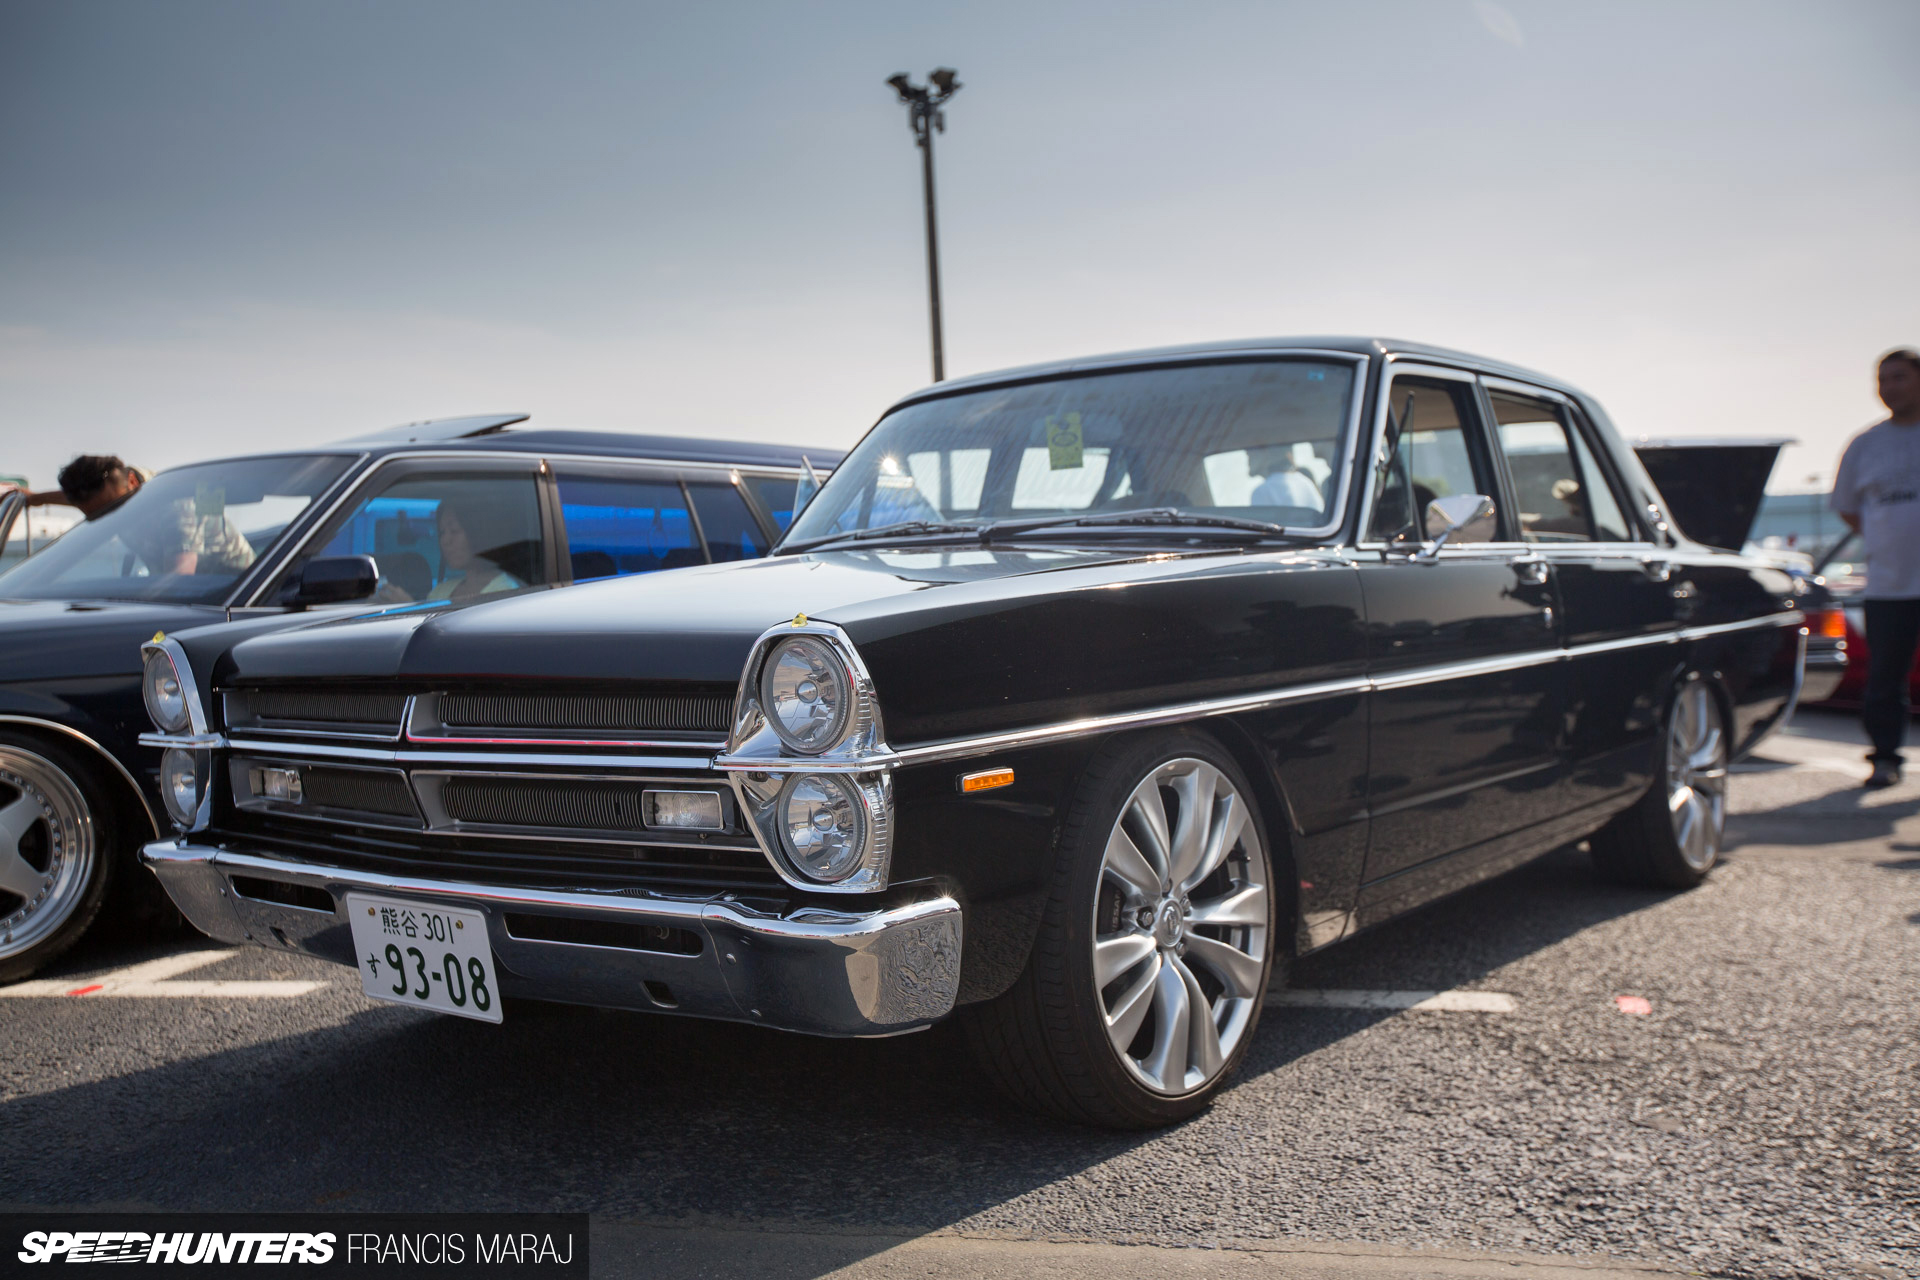 Drift Cars For Sale >> Out With The Old, In With The New - Speedhunters